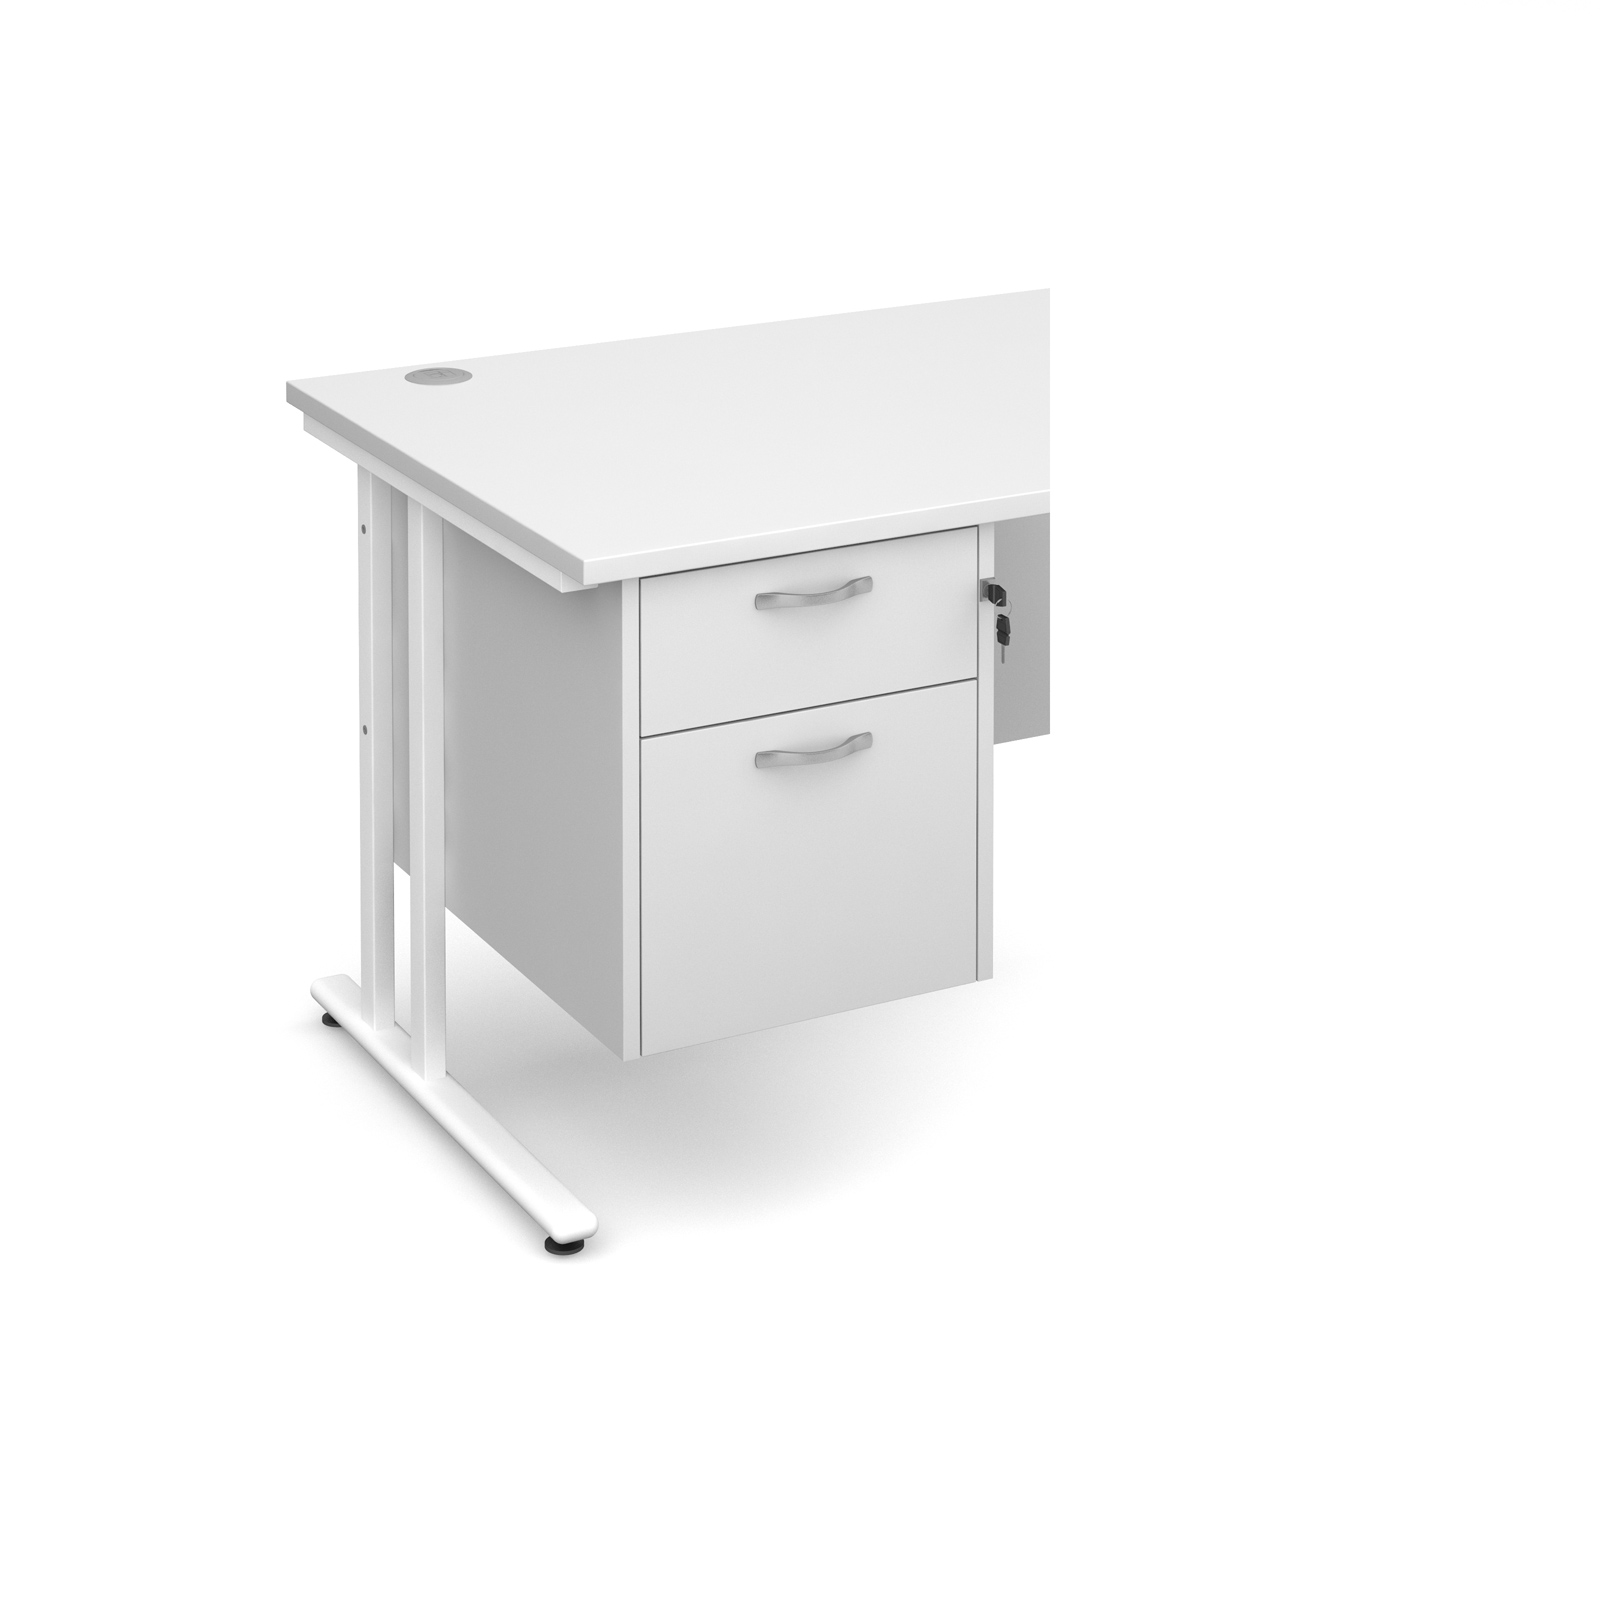 2 Drawer Fixed Pedestal in White